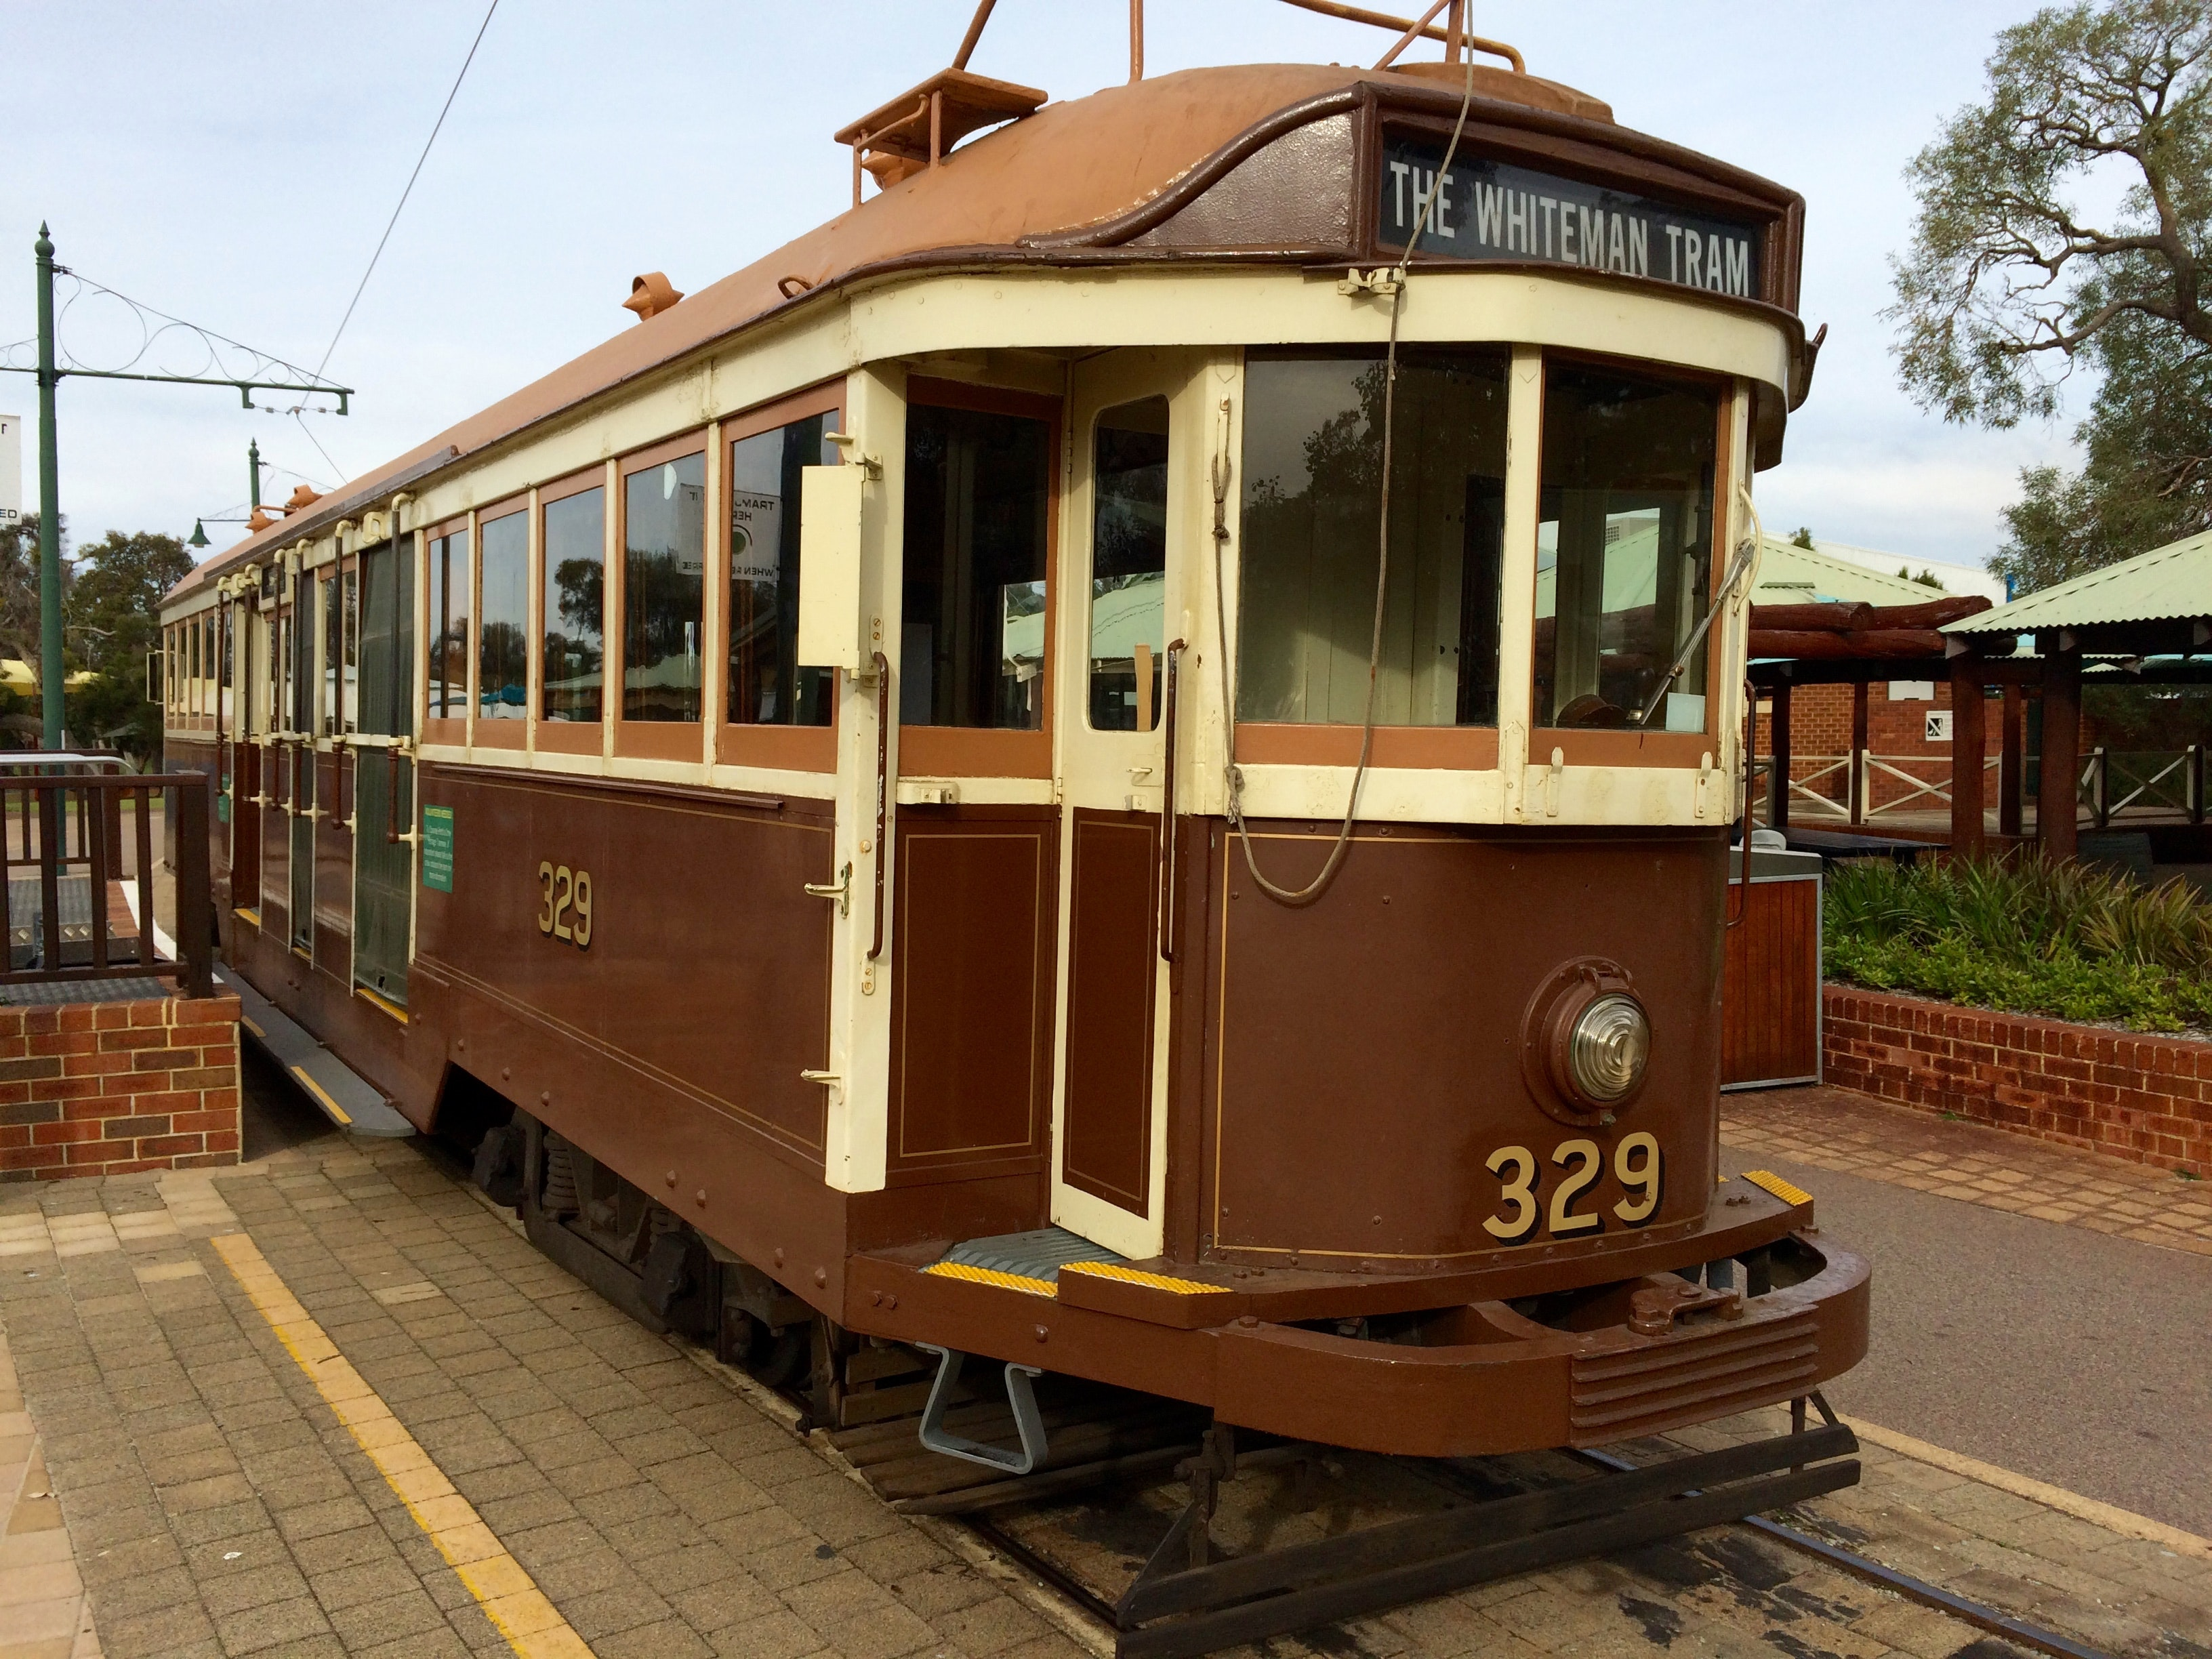 Old Perth tram, Whiteman Park